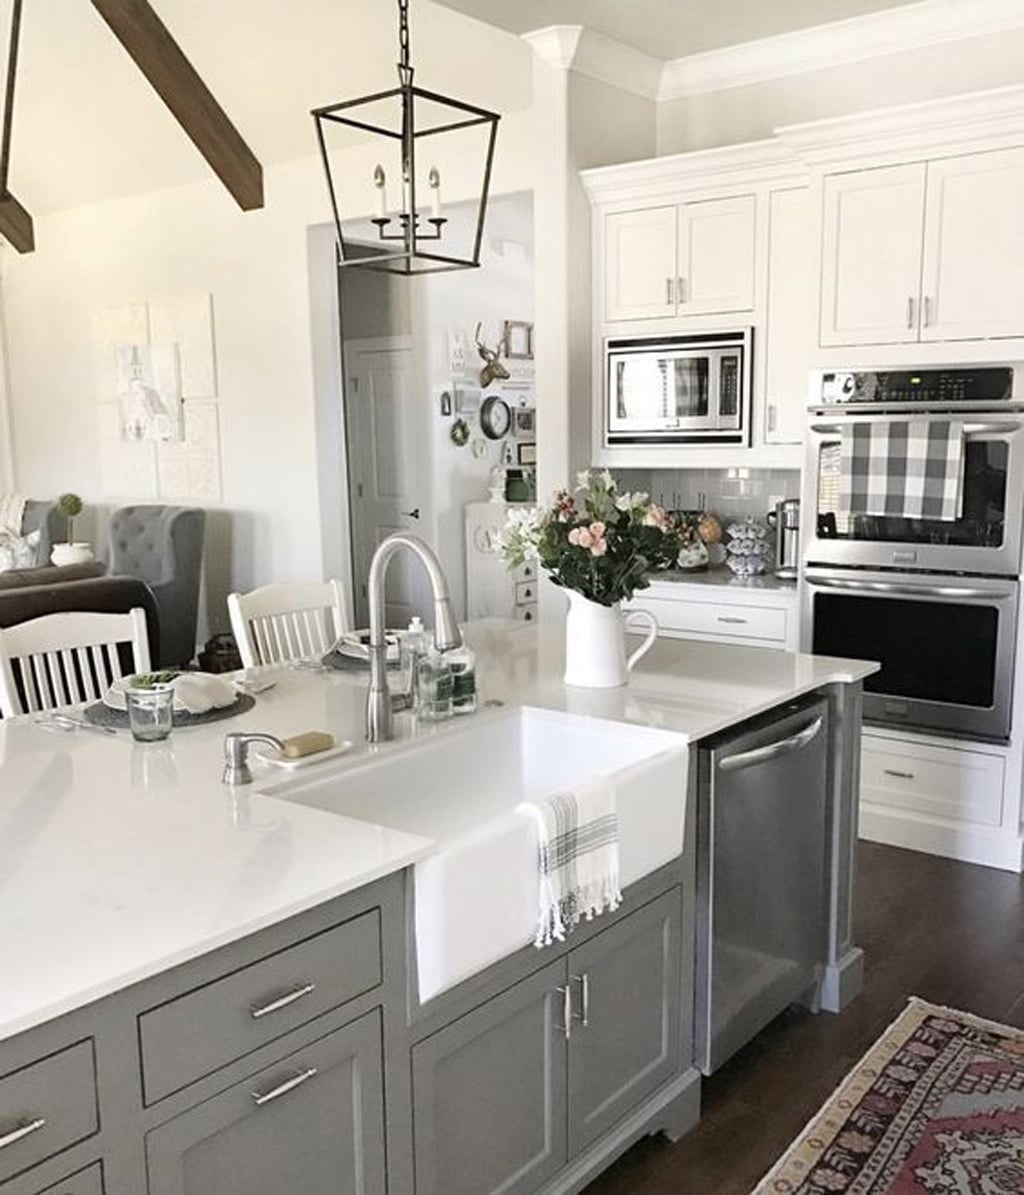 Gauntlet Gray on the kitchen island from Our Vintage Nest - 30 Cabinet Colors that will Rejuvenate your Kitchen